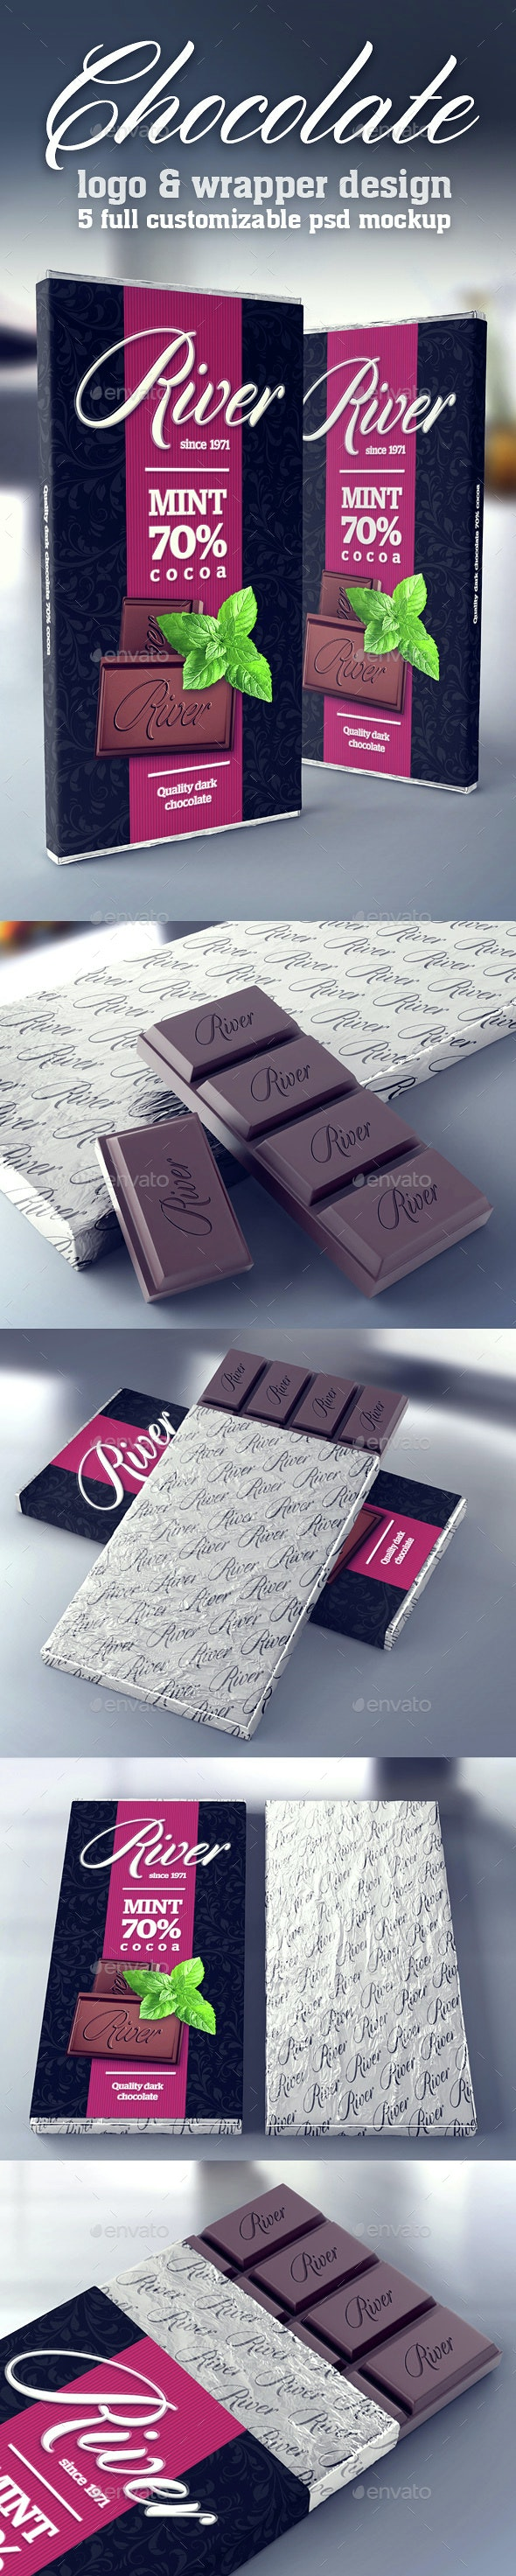 Chocolate Wrapper & Logo Mockup - Food and Drink Packaging